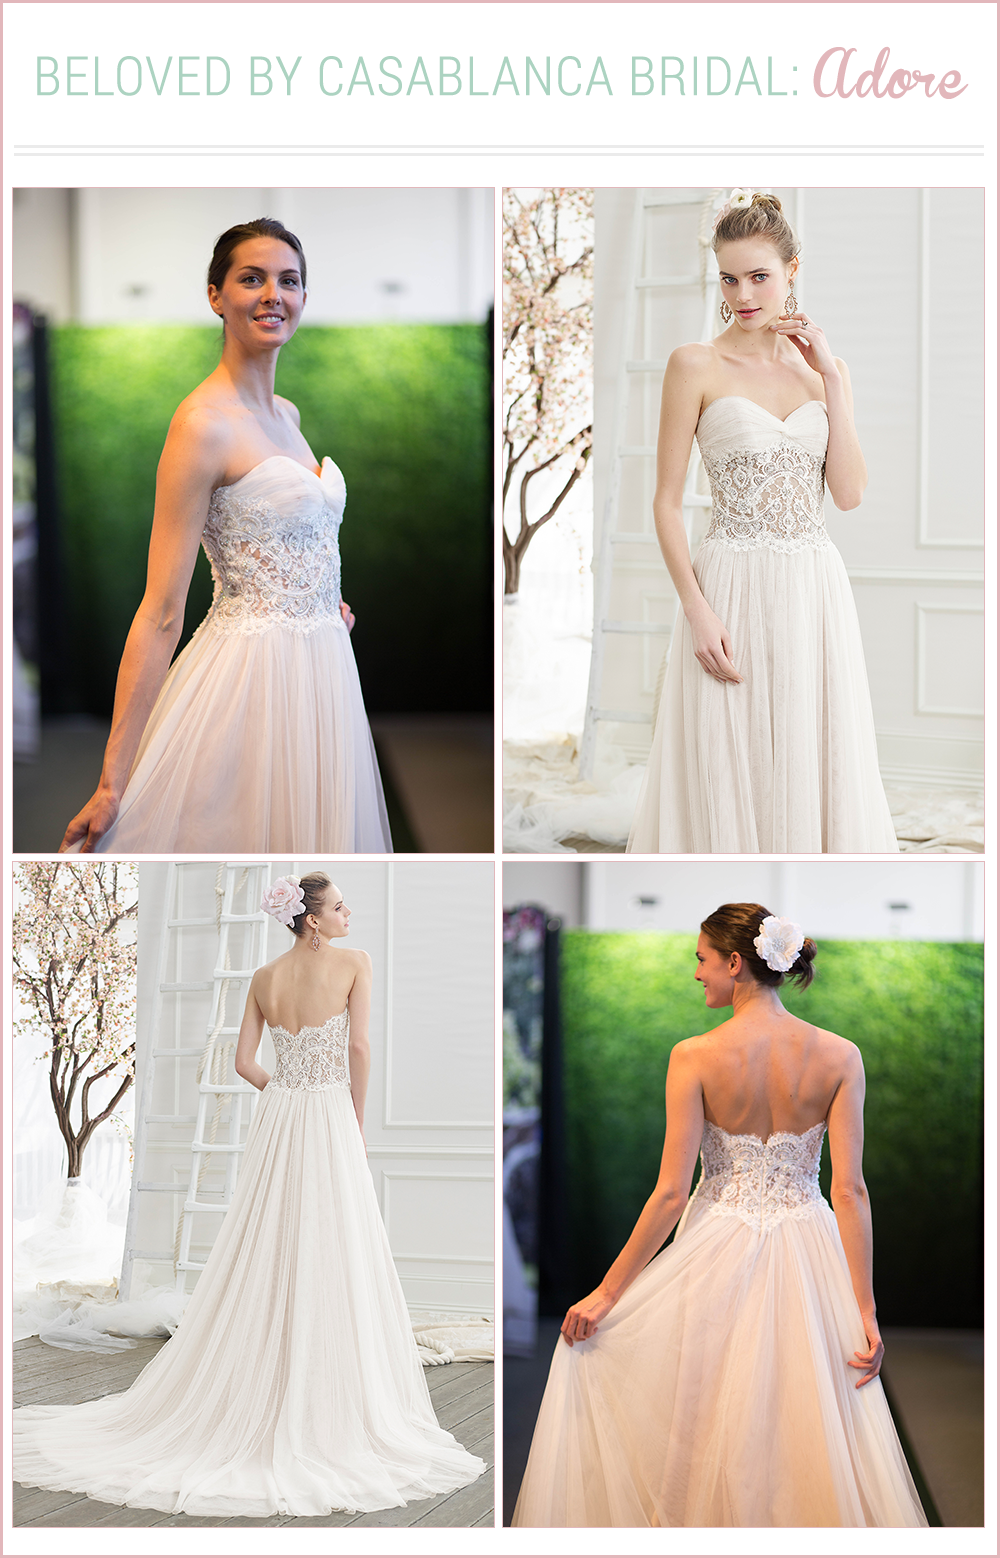 75bc84c3c5cef 12 Budget Friendly Wedding Dresses from Beloved by Casablanca Bridal